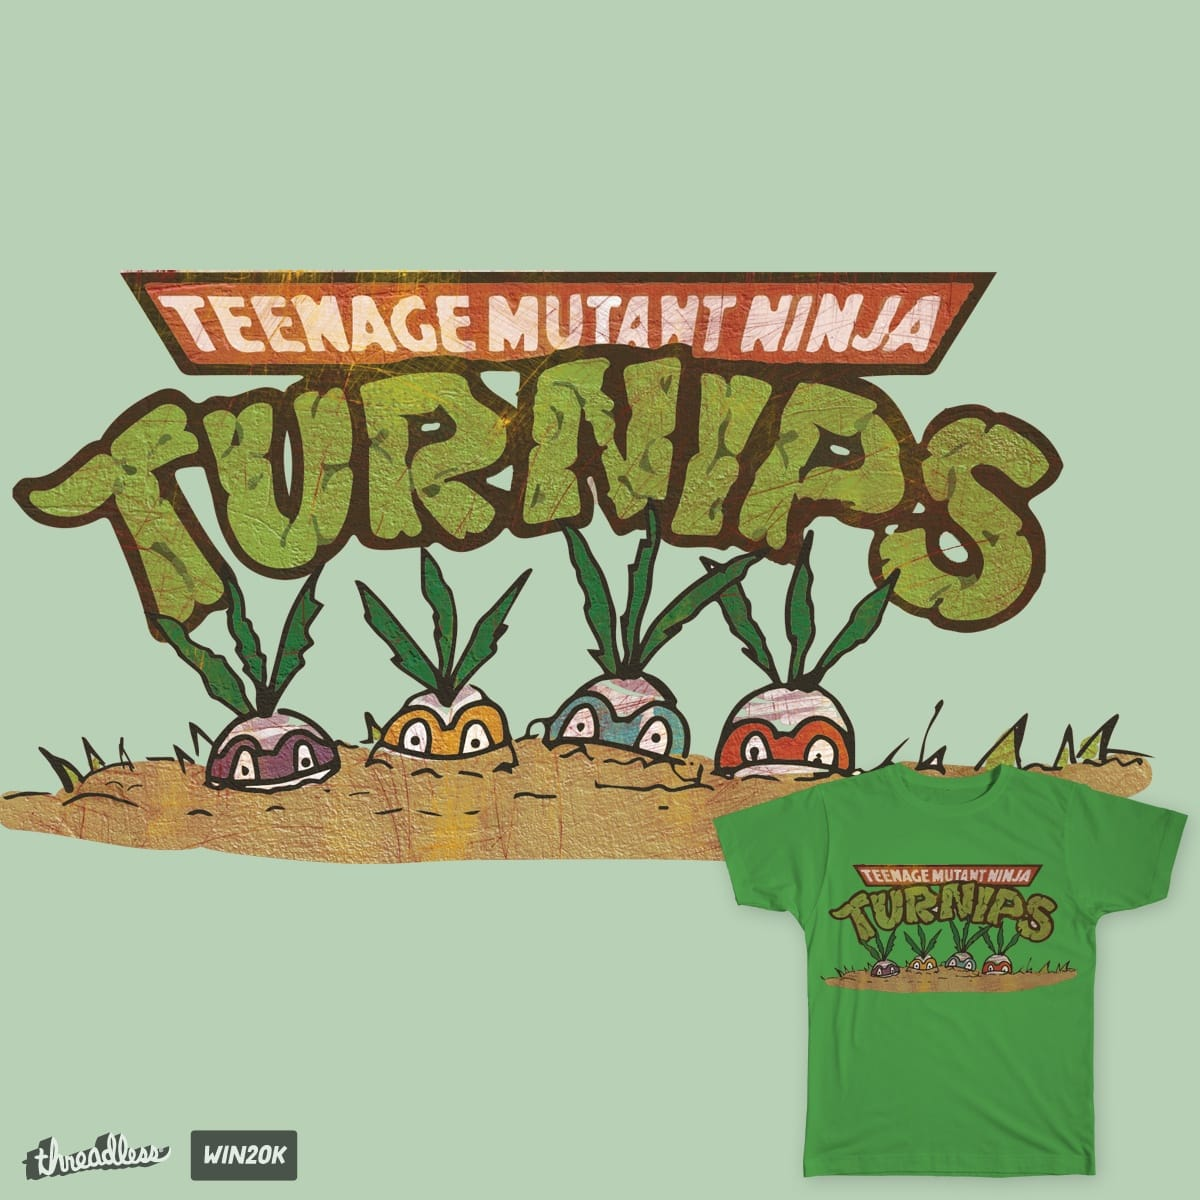 Teenge Mutant Ninja Turnips by Jamietaylor1985 on Threadless